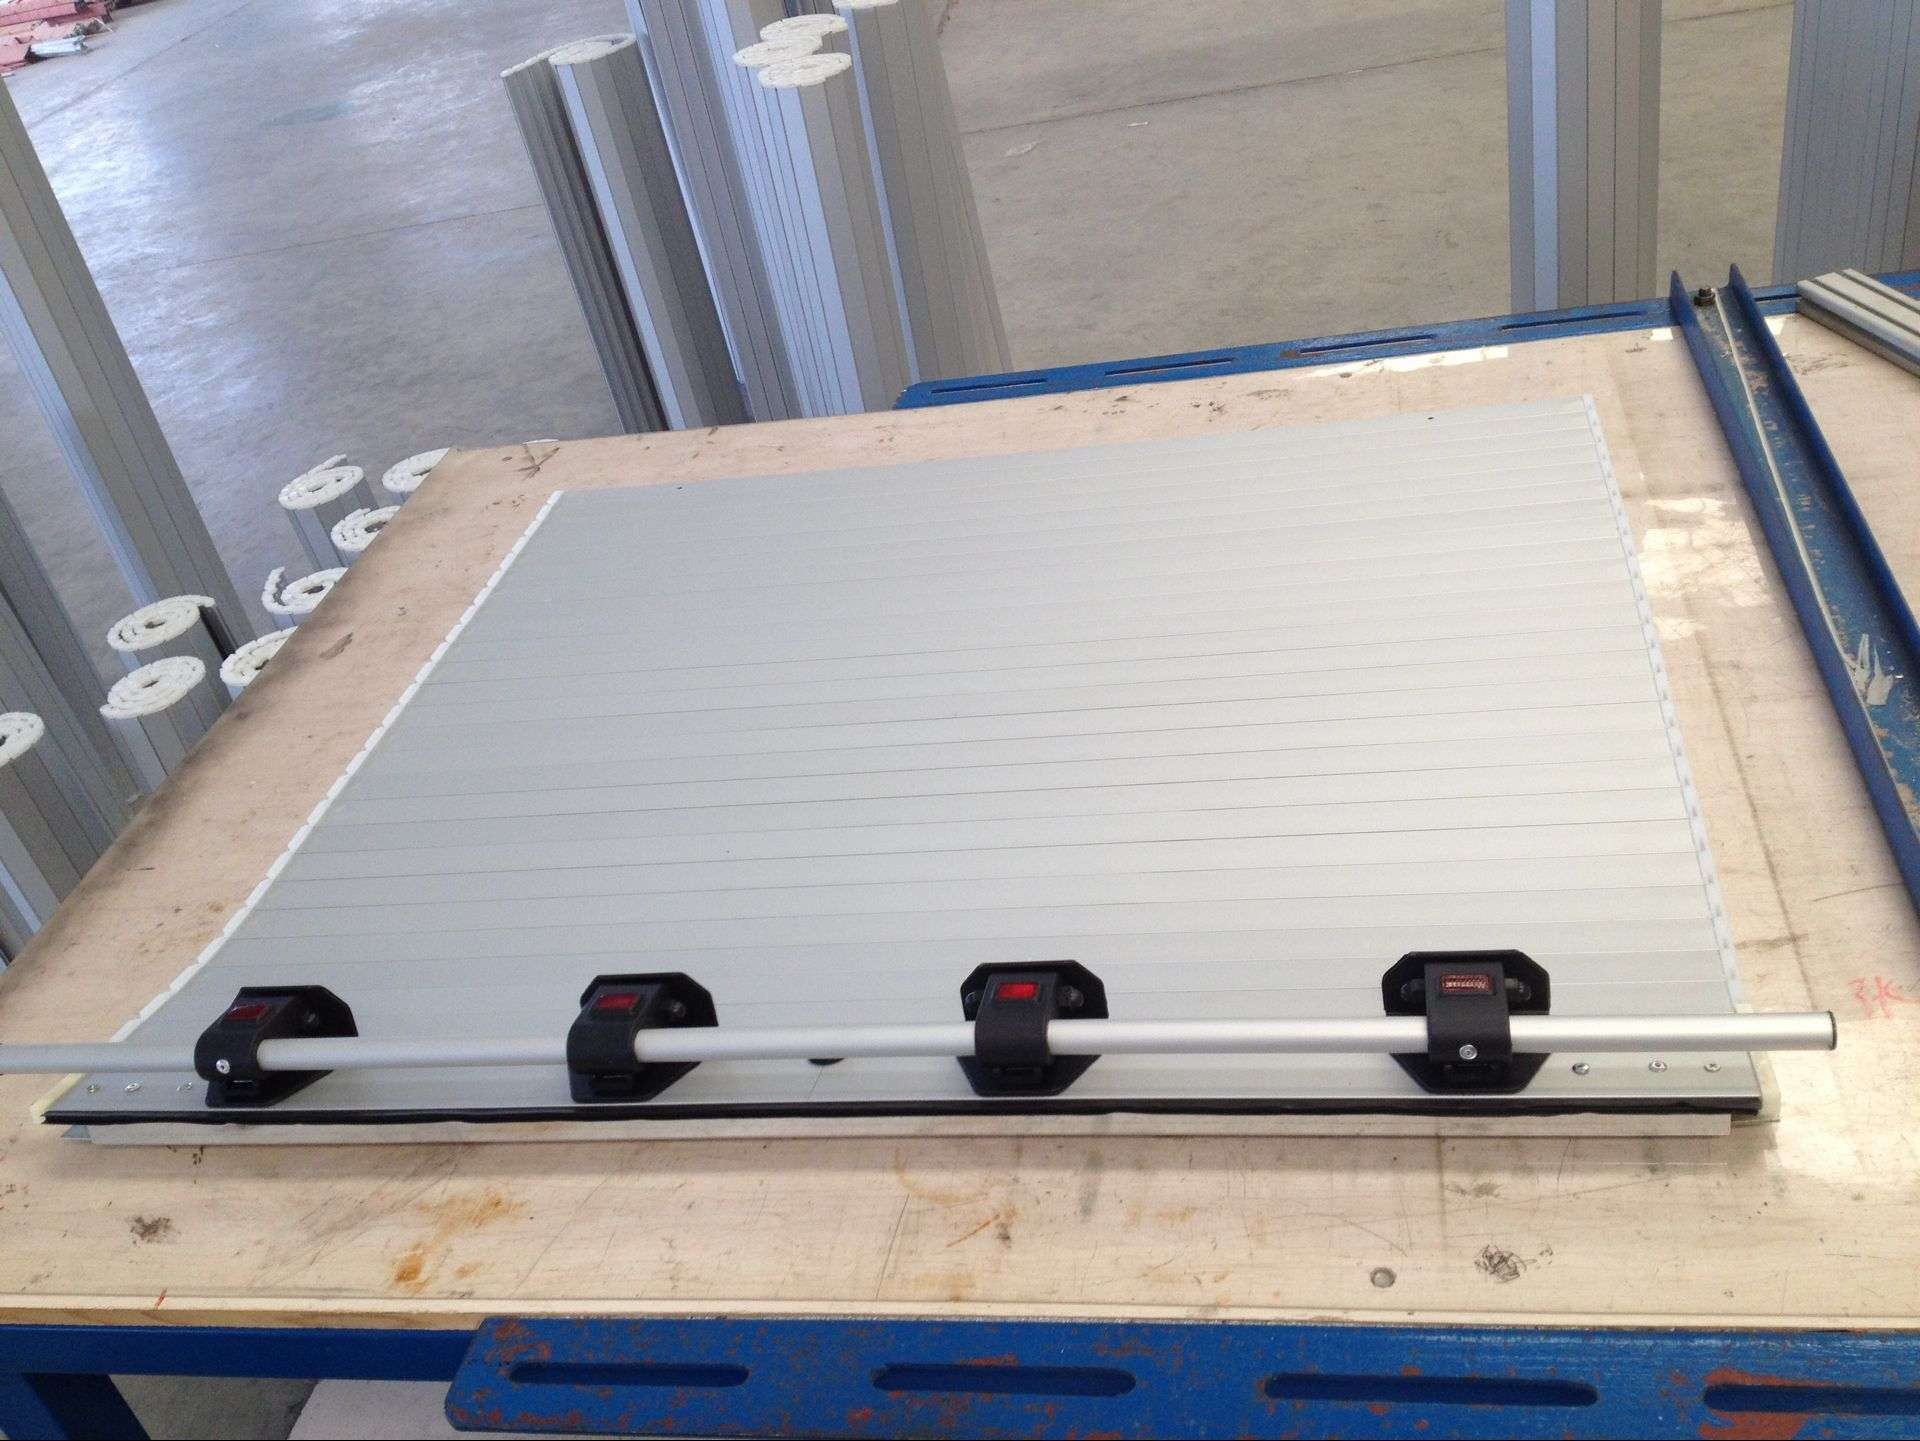 Extruded Double Layer Aluminum Roller Shutter Rollup Door Used For Various Emergency Vehicles